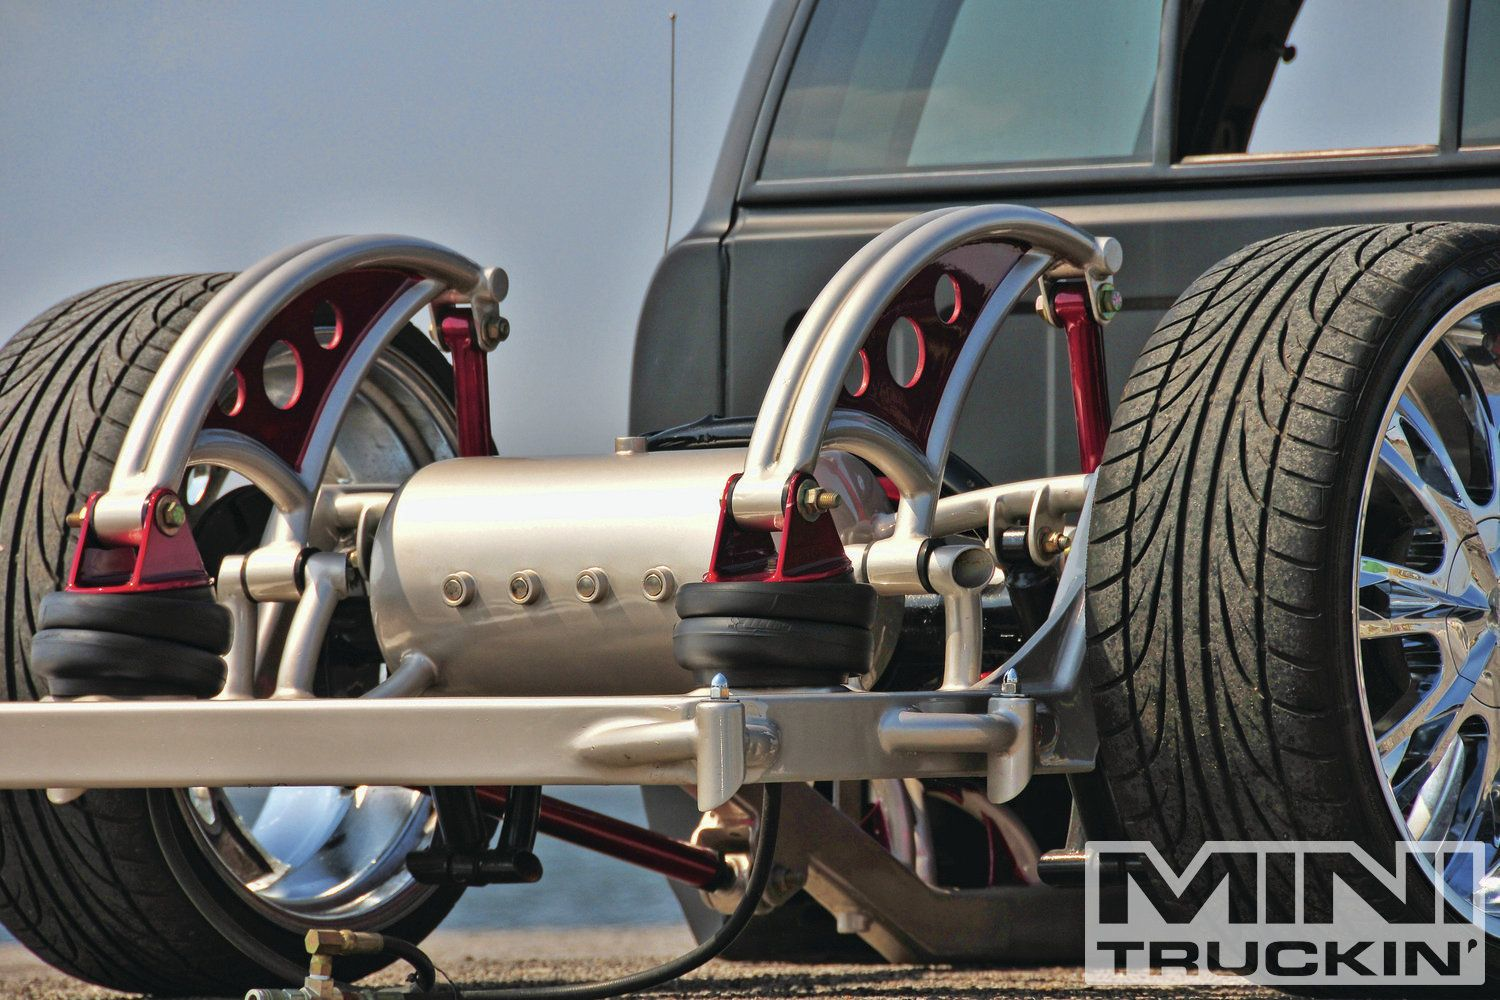 2003 Gmc Sonoma Bagged Rear Suspension Photo 1 | C-10